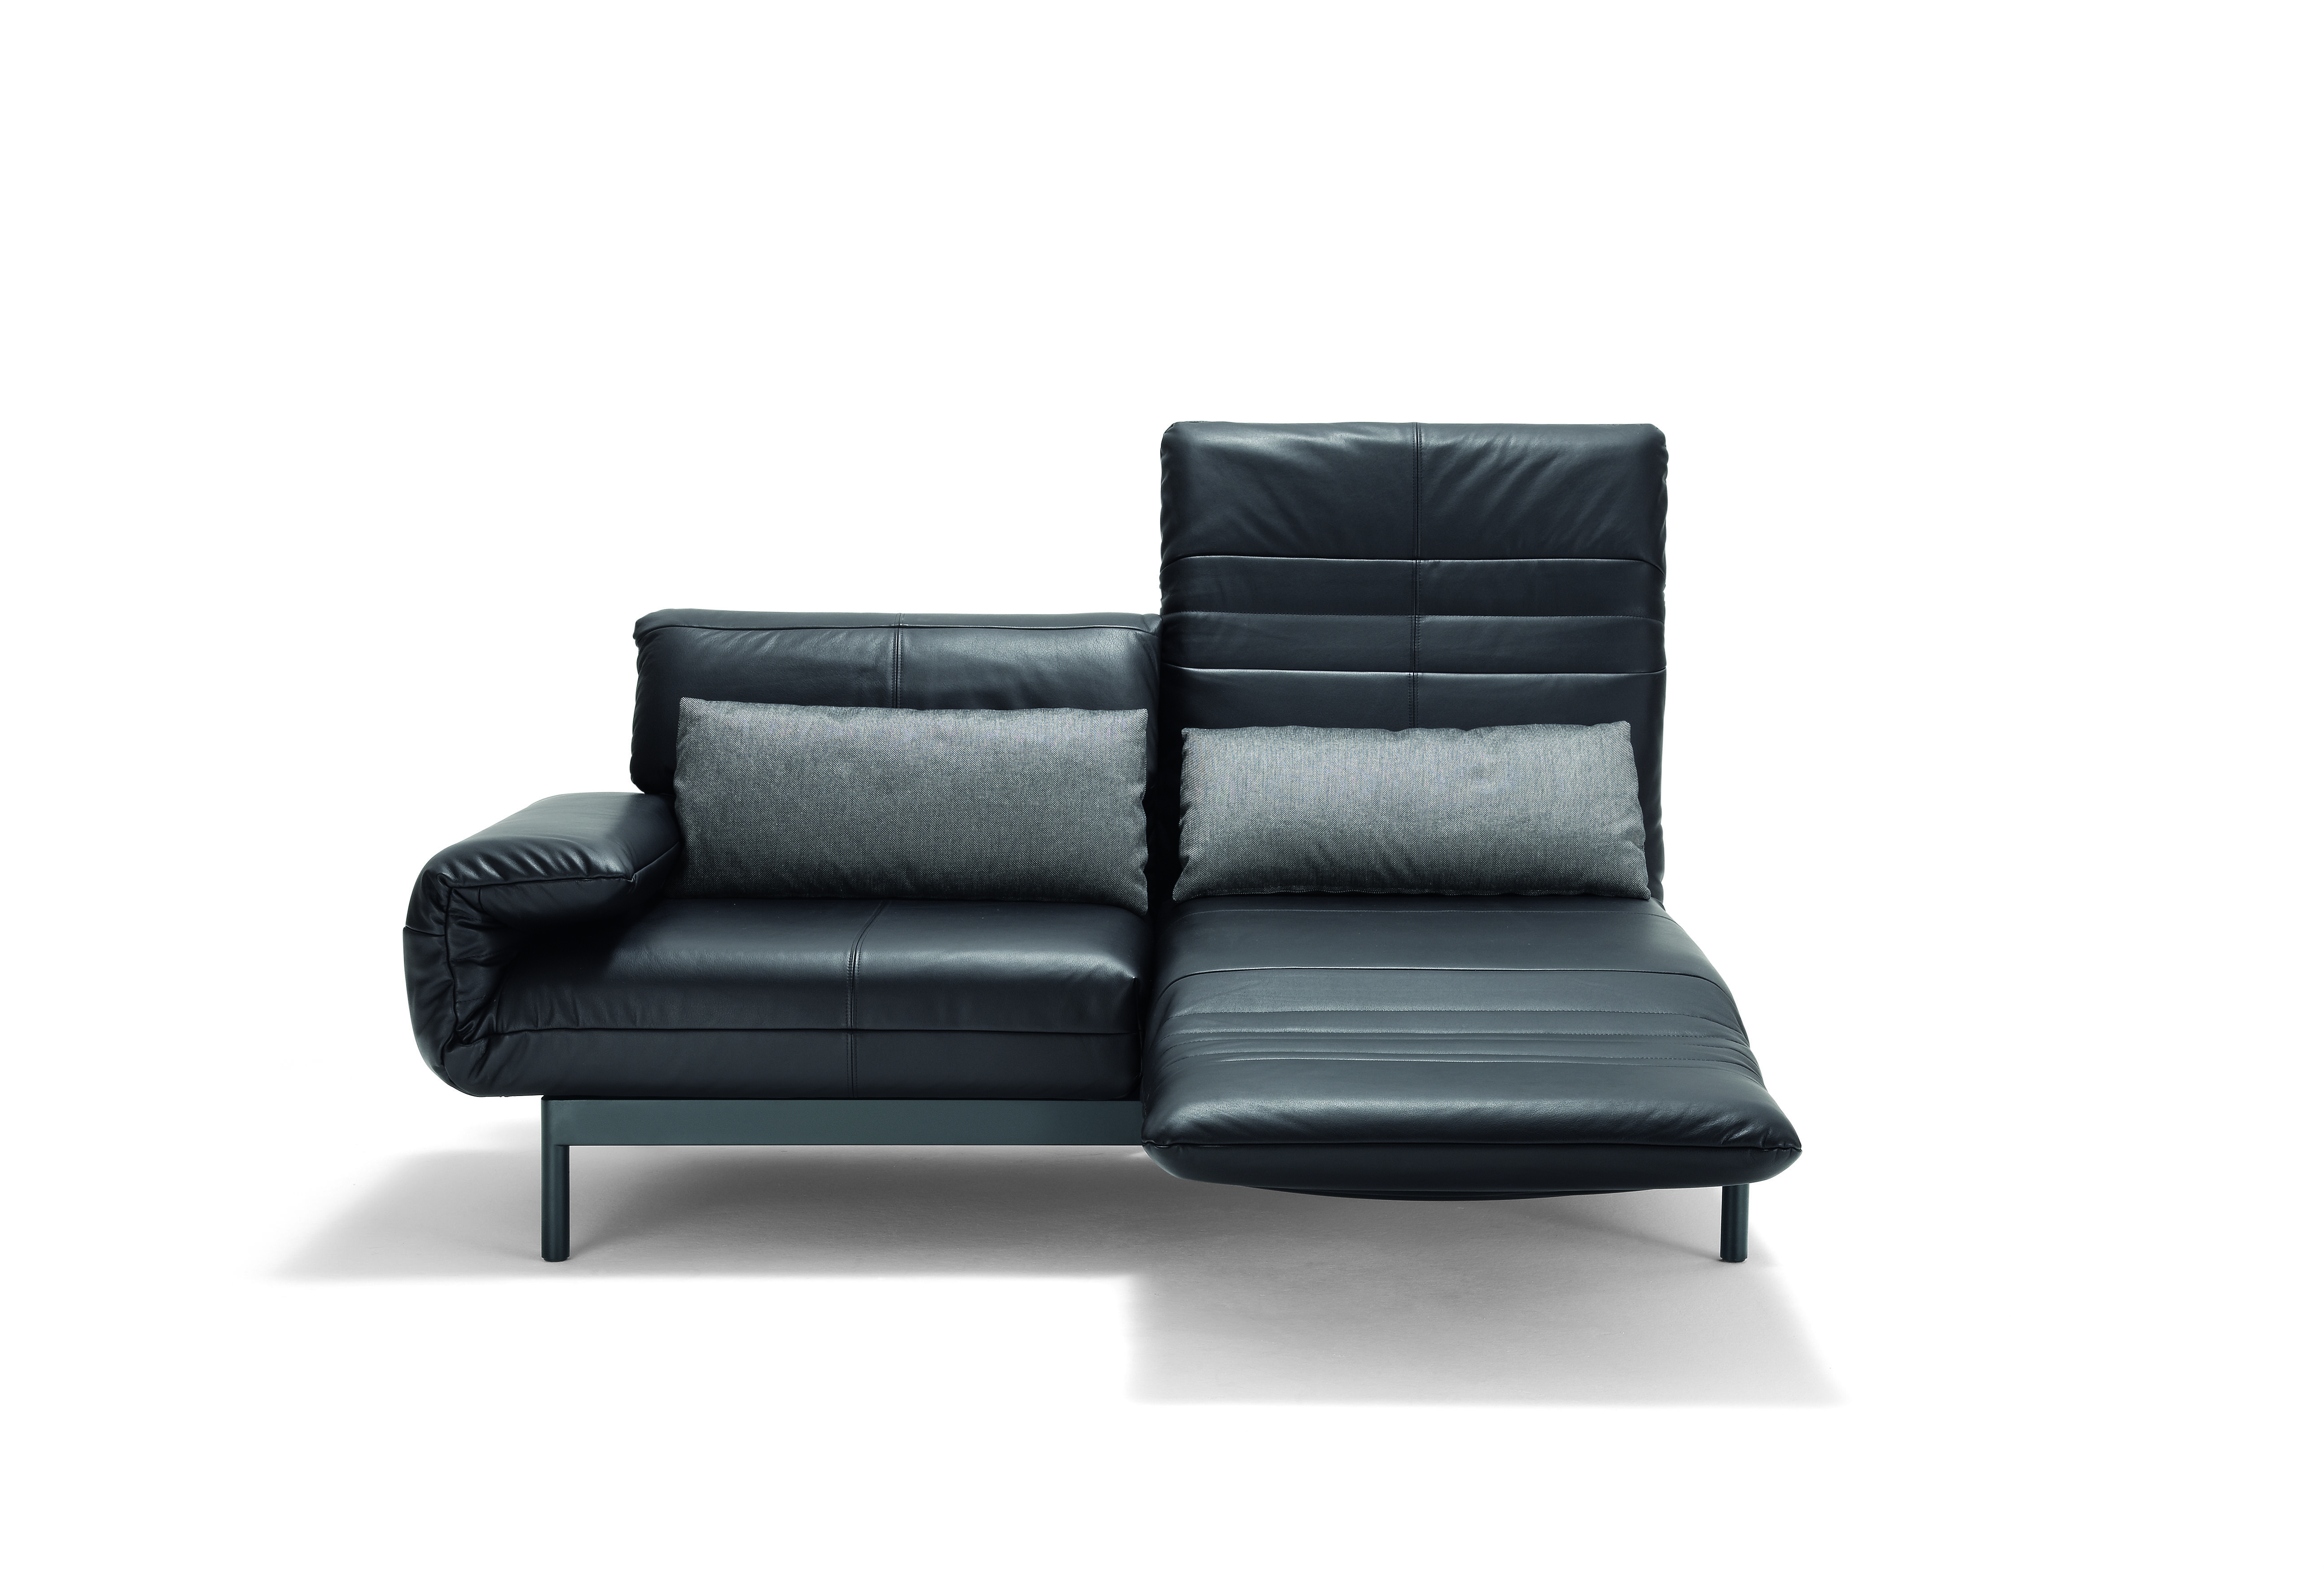 Rolf Benz PLURA sofa with mechanism Sit lounge or lie down